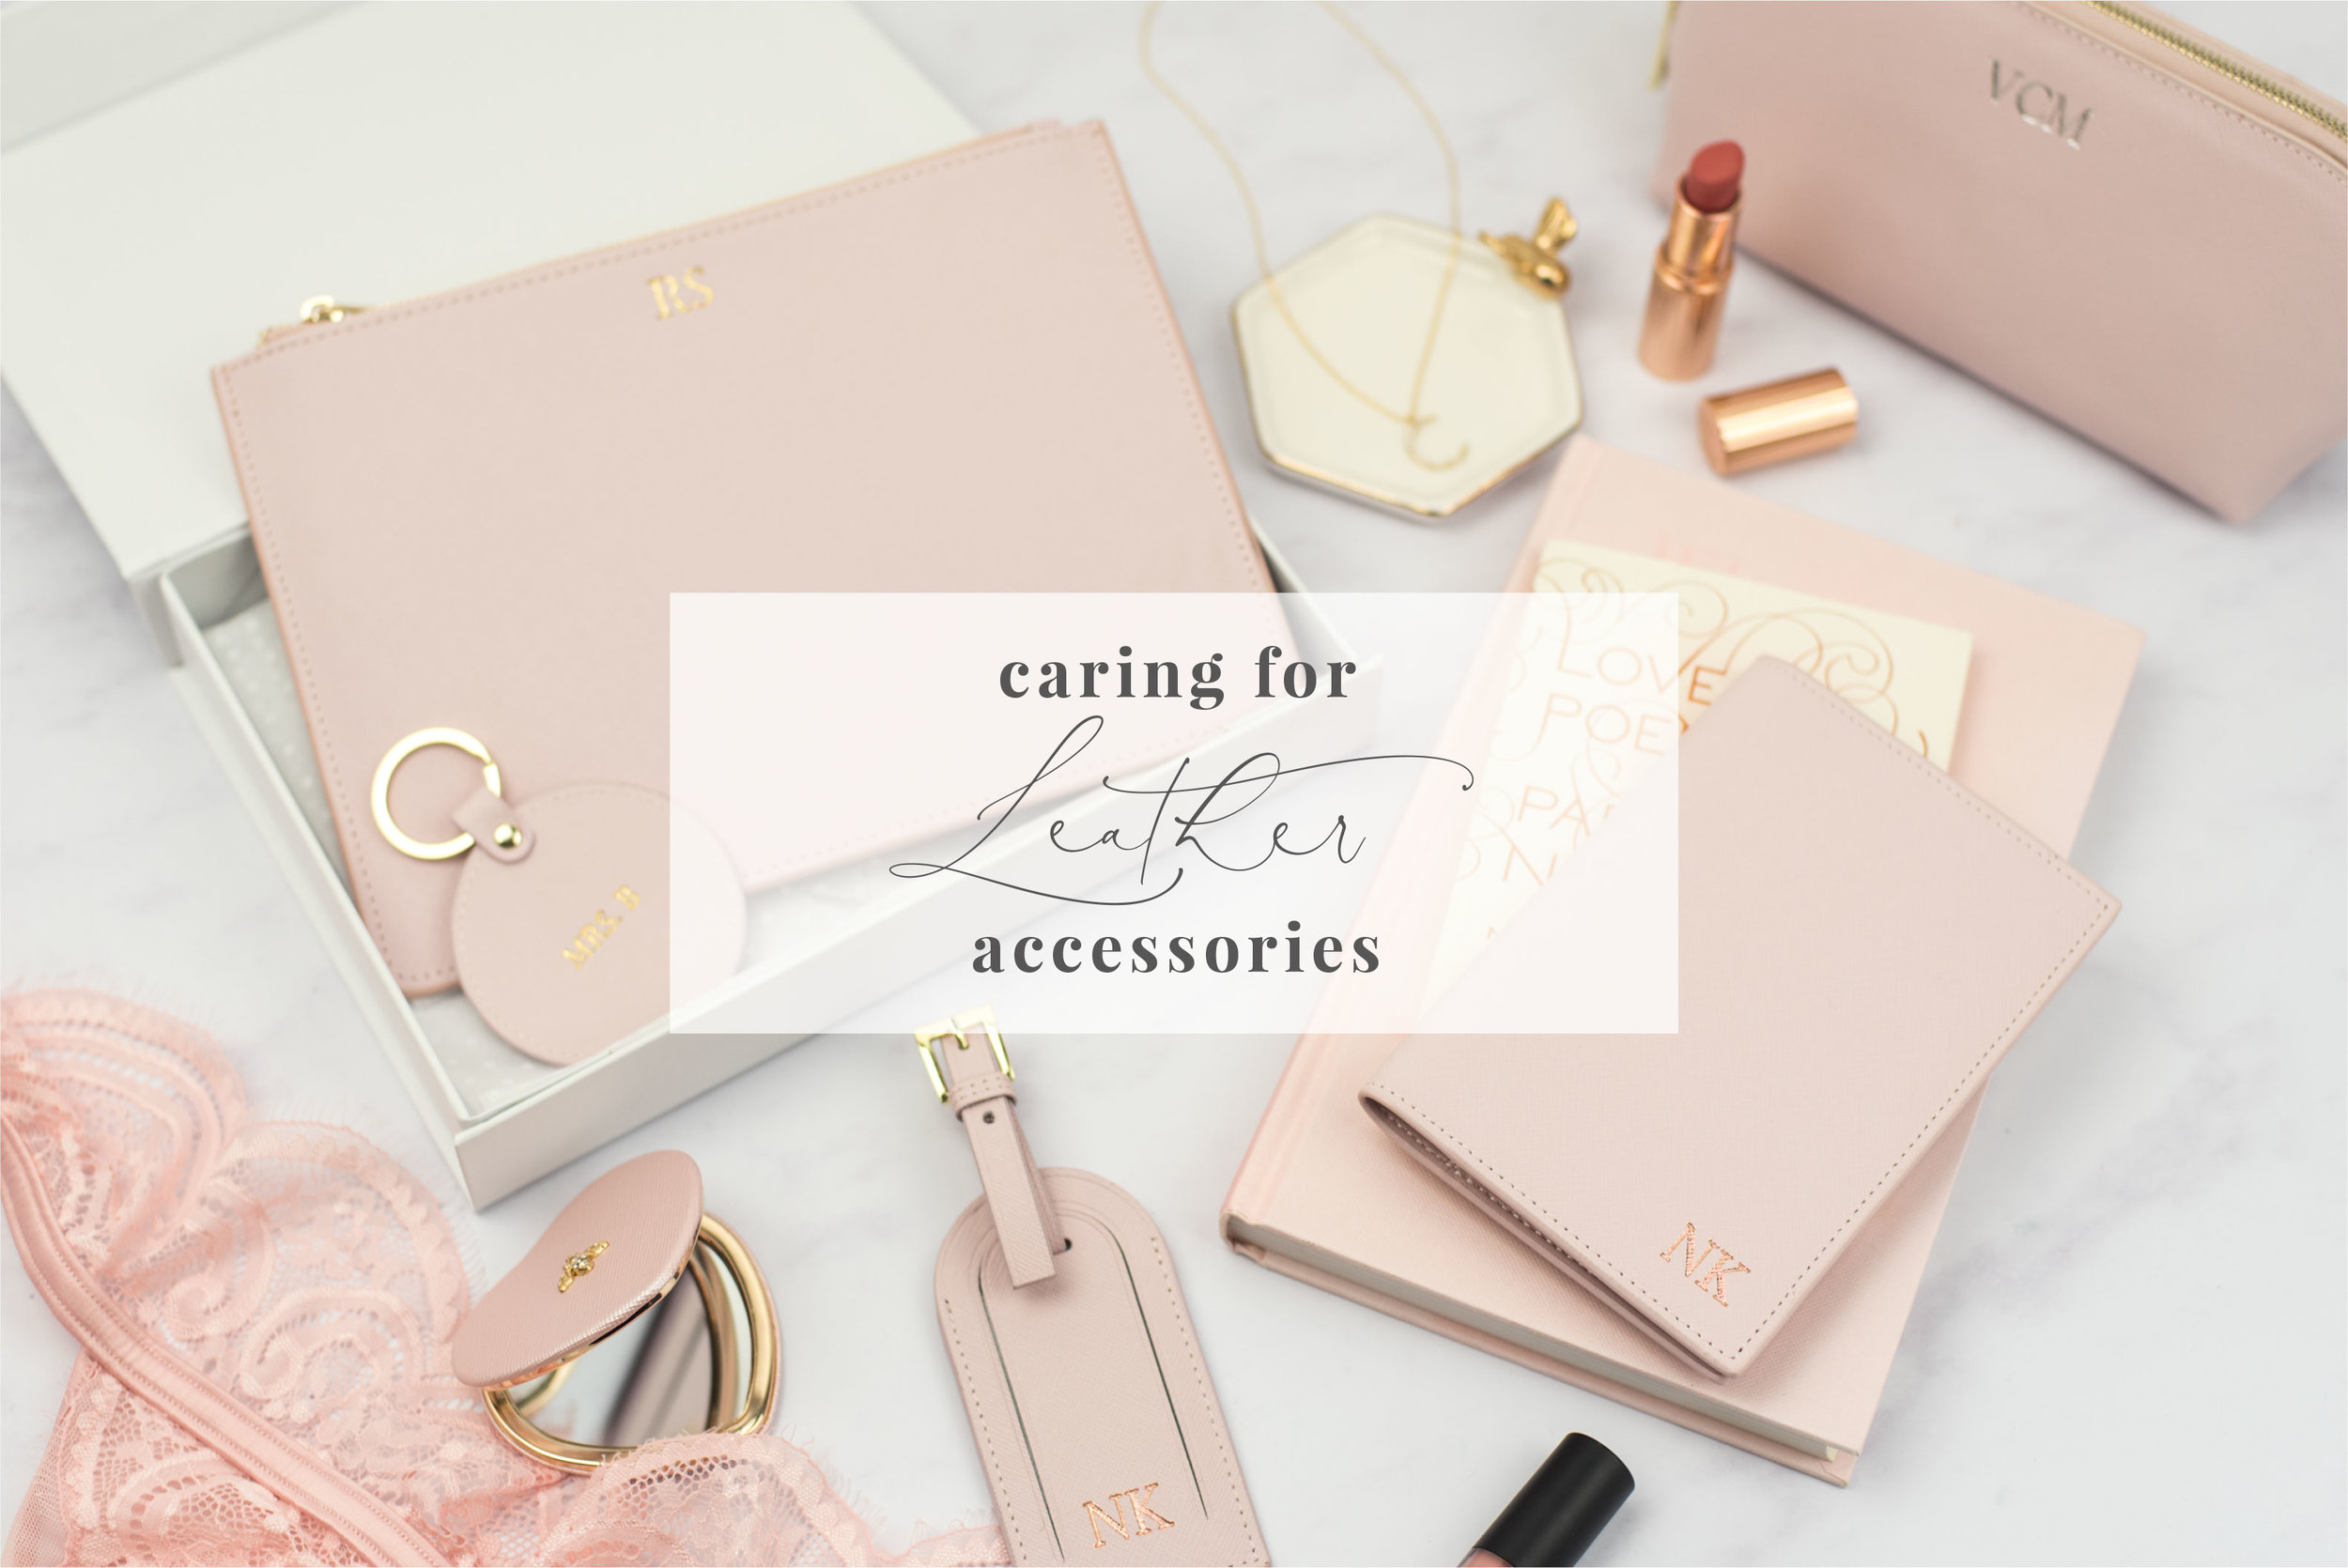 caring-for-leather-accessories-2.jpg